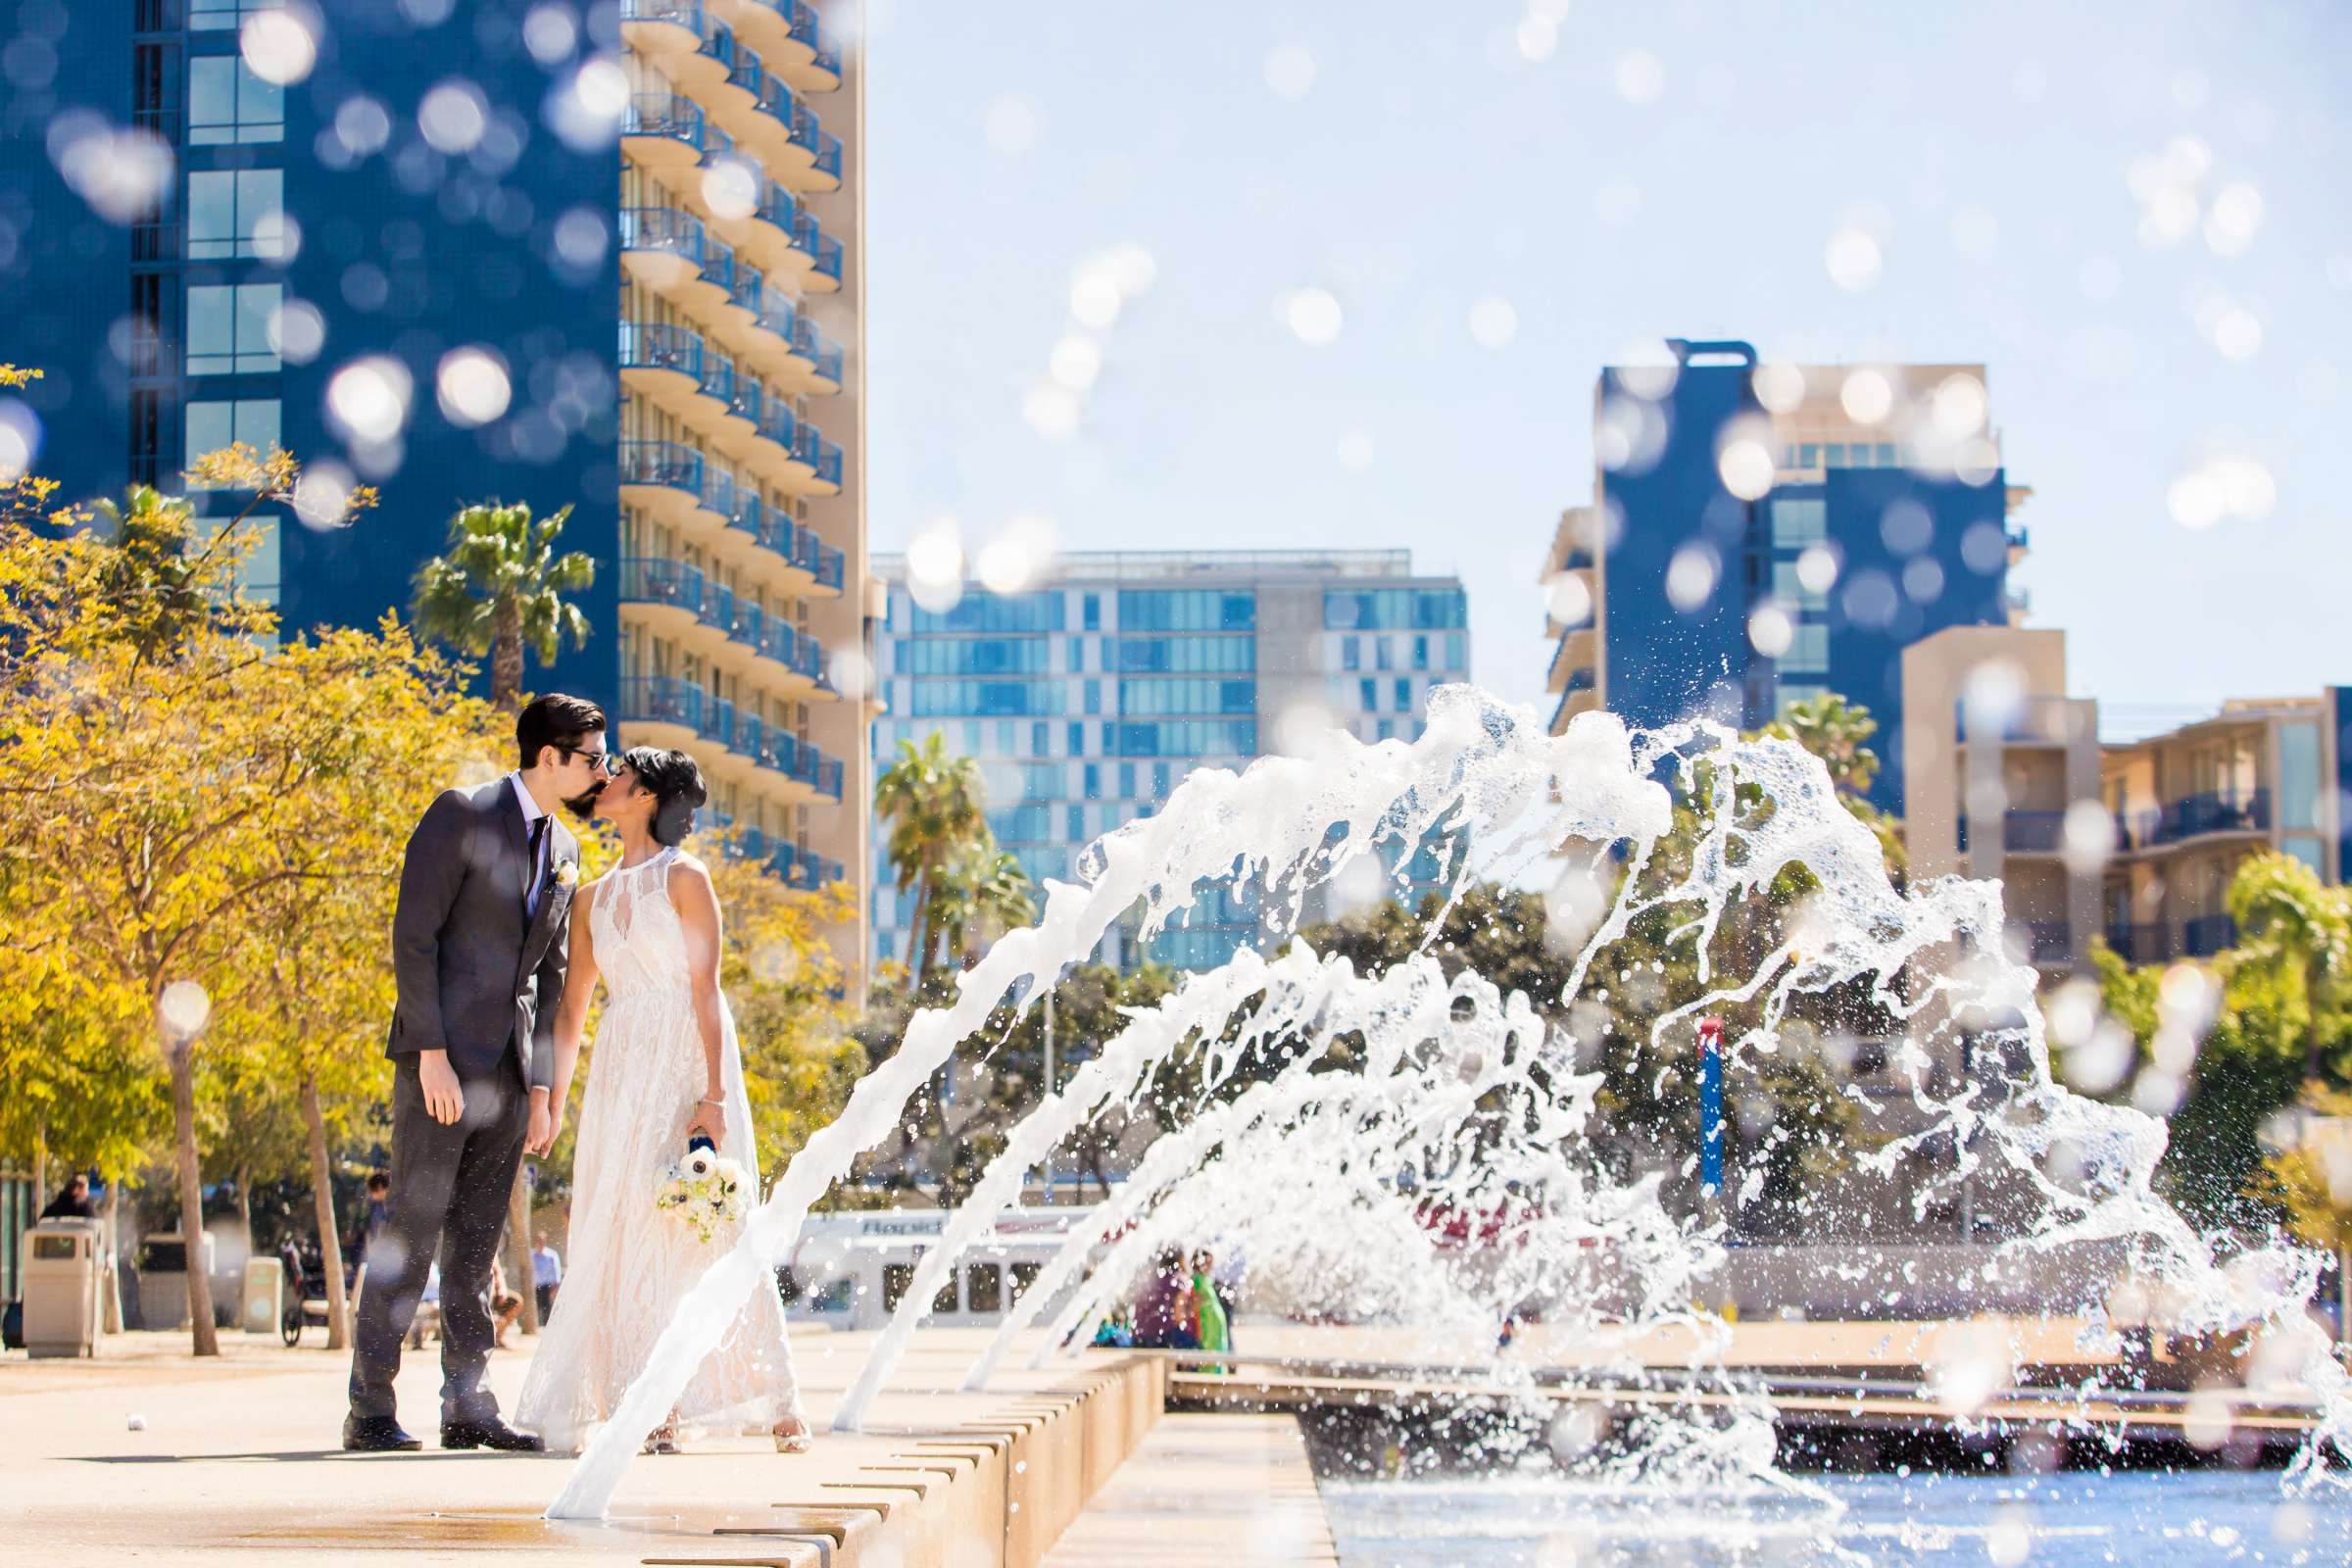 San Diego Courthouse Wedding, Jane and Ale Wedding Photo #335546 by True Photography